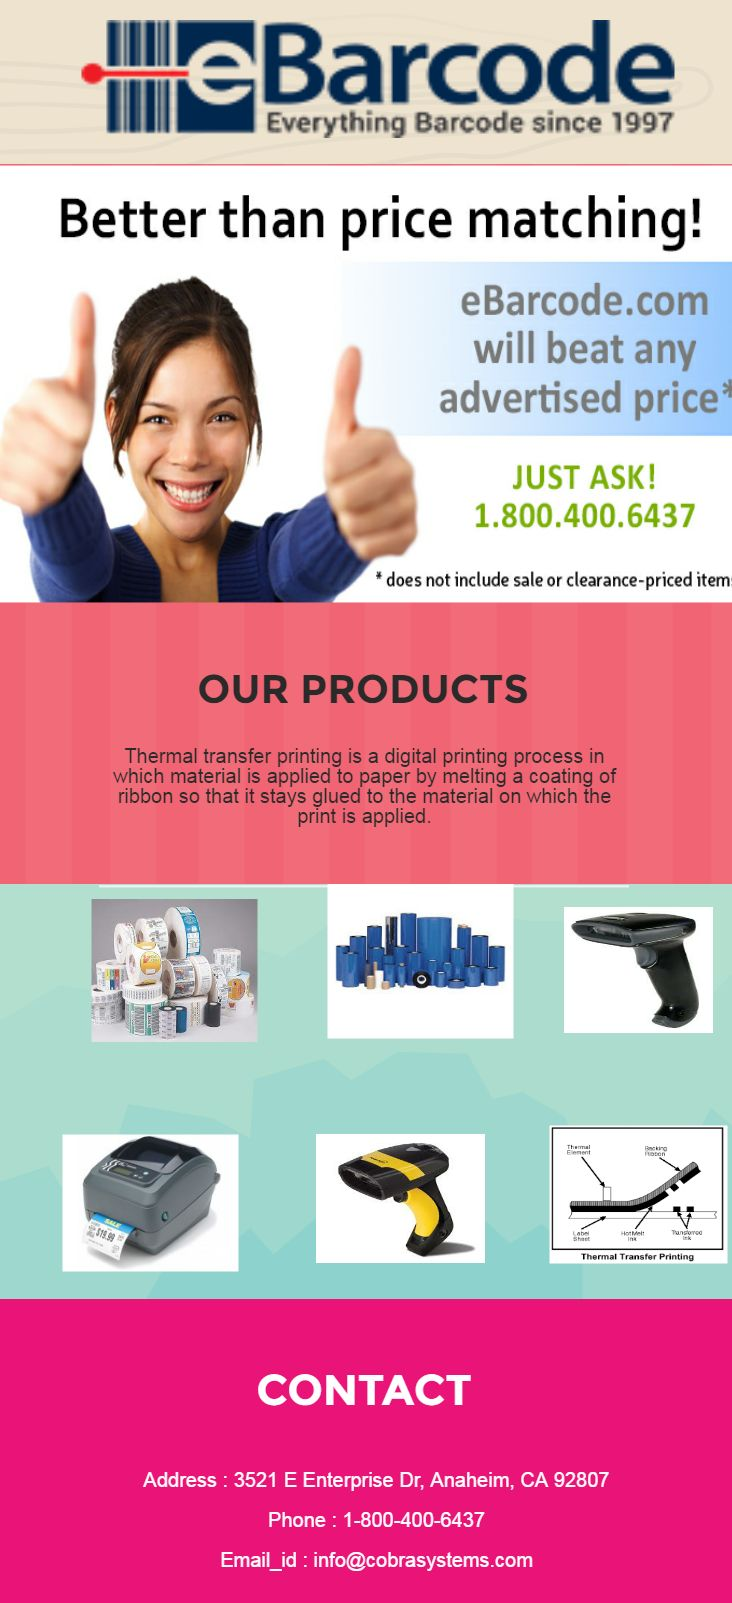 At Ebarcode we have large number selection on printers with high quality and durability. You require recognizing standardized labels on packaging, if you are amassing things and Barcode supplies for retail bargain. We are offering the so many barcode supplies at exclusive discounts. Contact for any query https://www.ebarcode.com/.